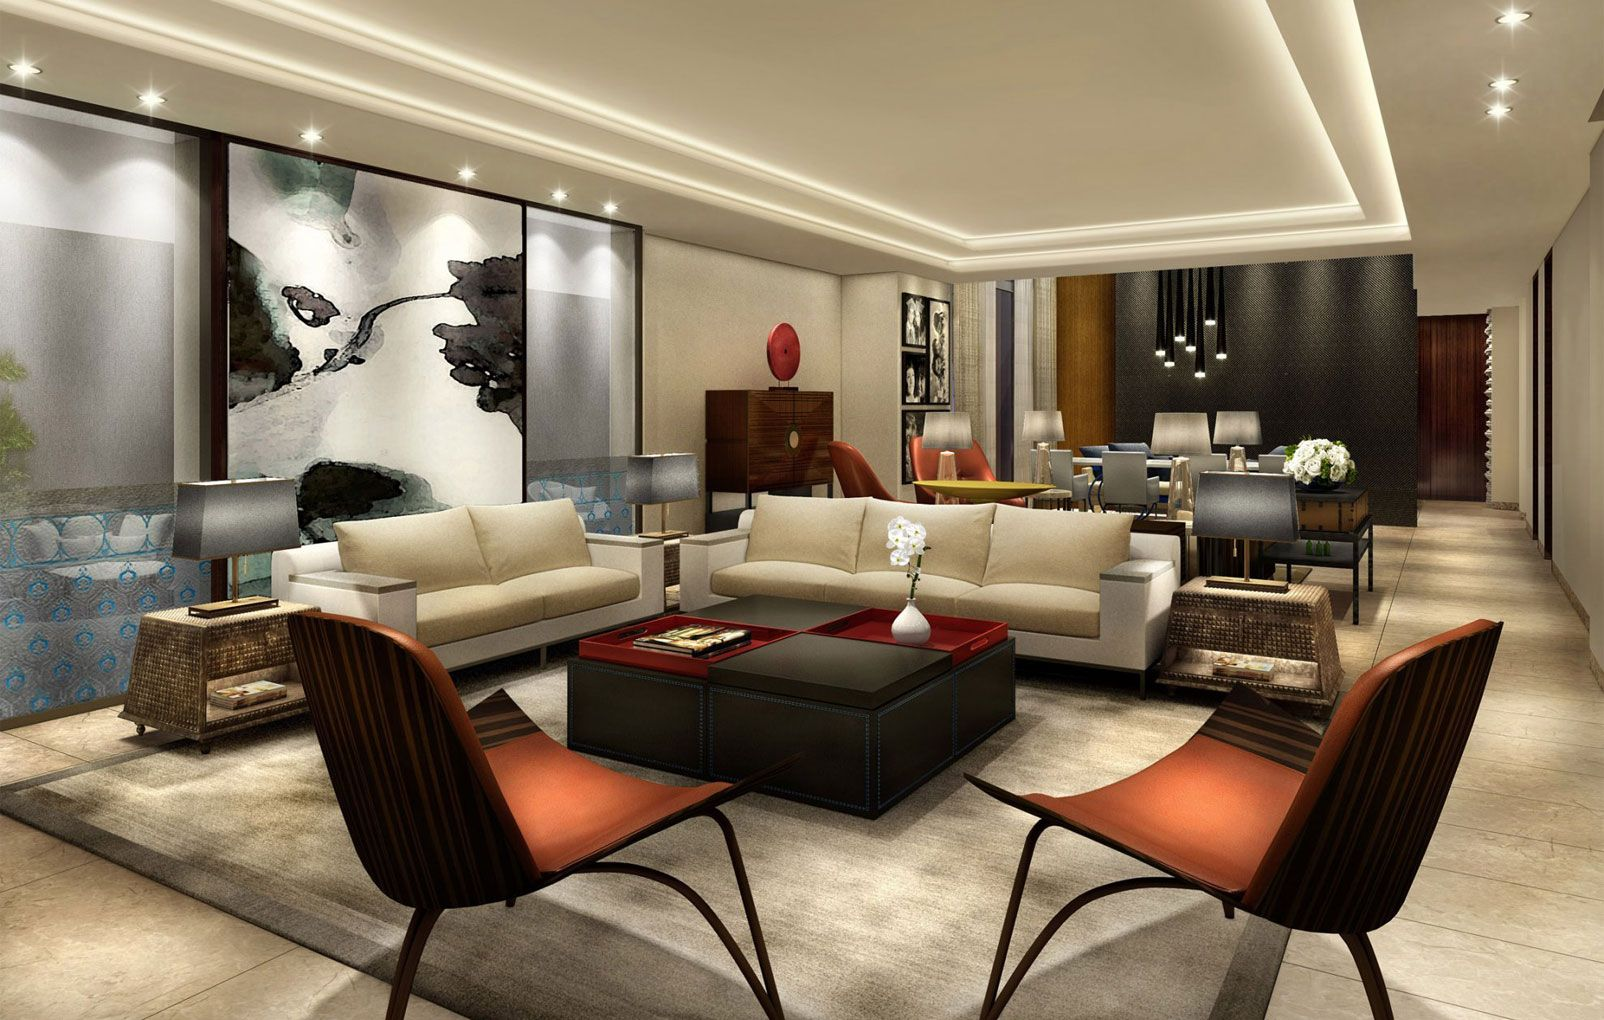 Resaiki Interior Is The Pioneer Residential Designers Company In Delhi NCR That Offers